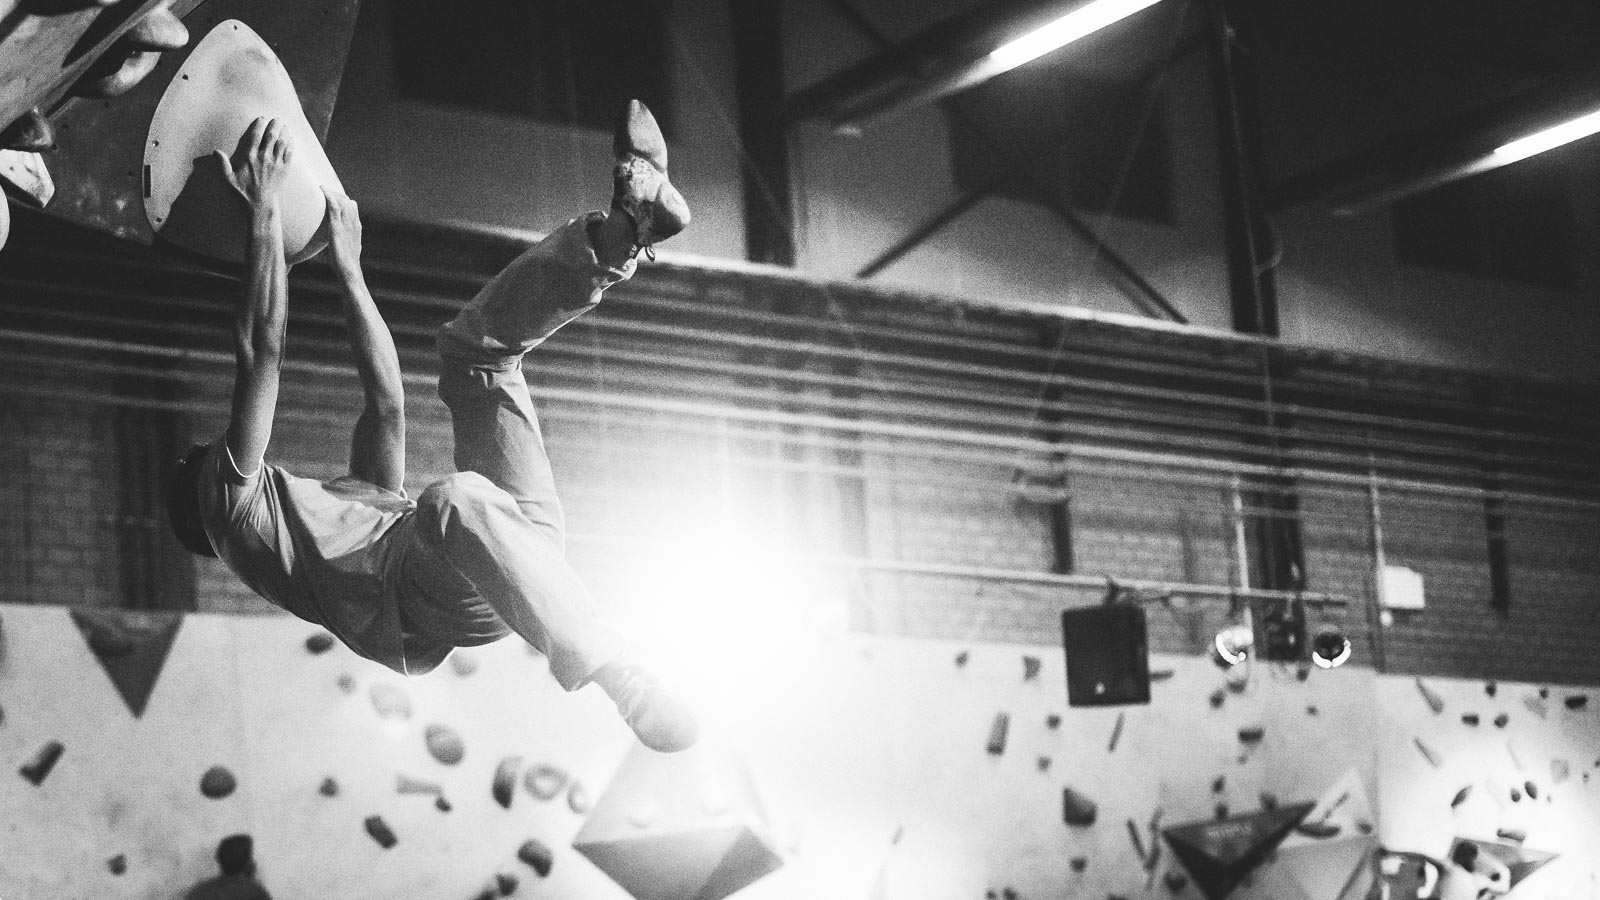 Climber making a huge swing in a climbing move in a bouldergym